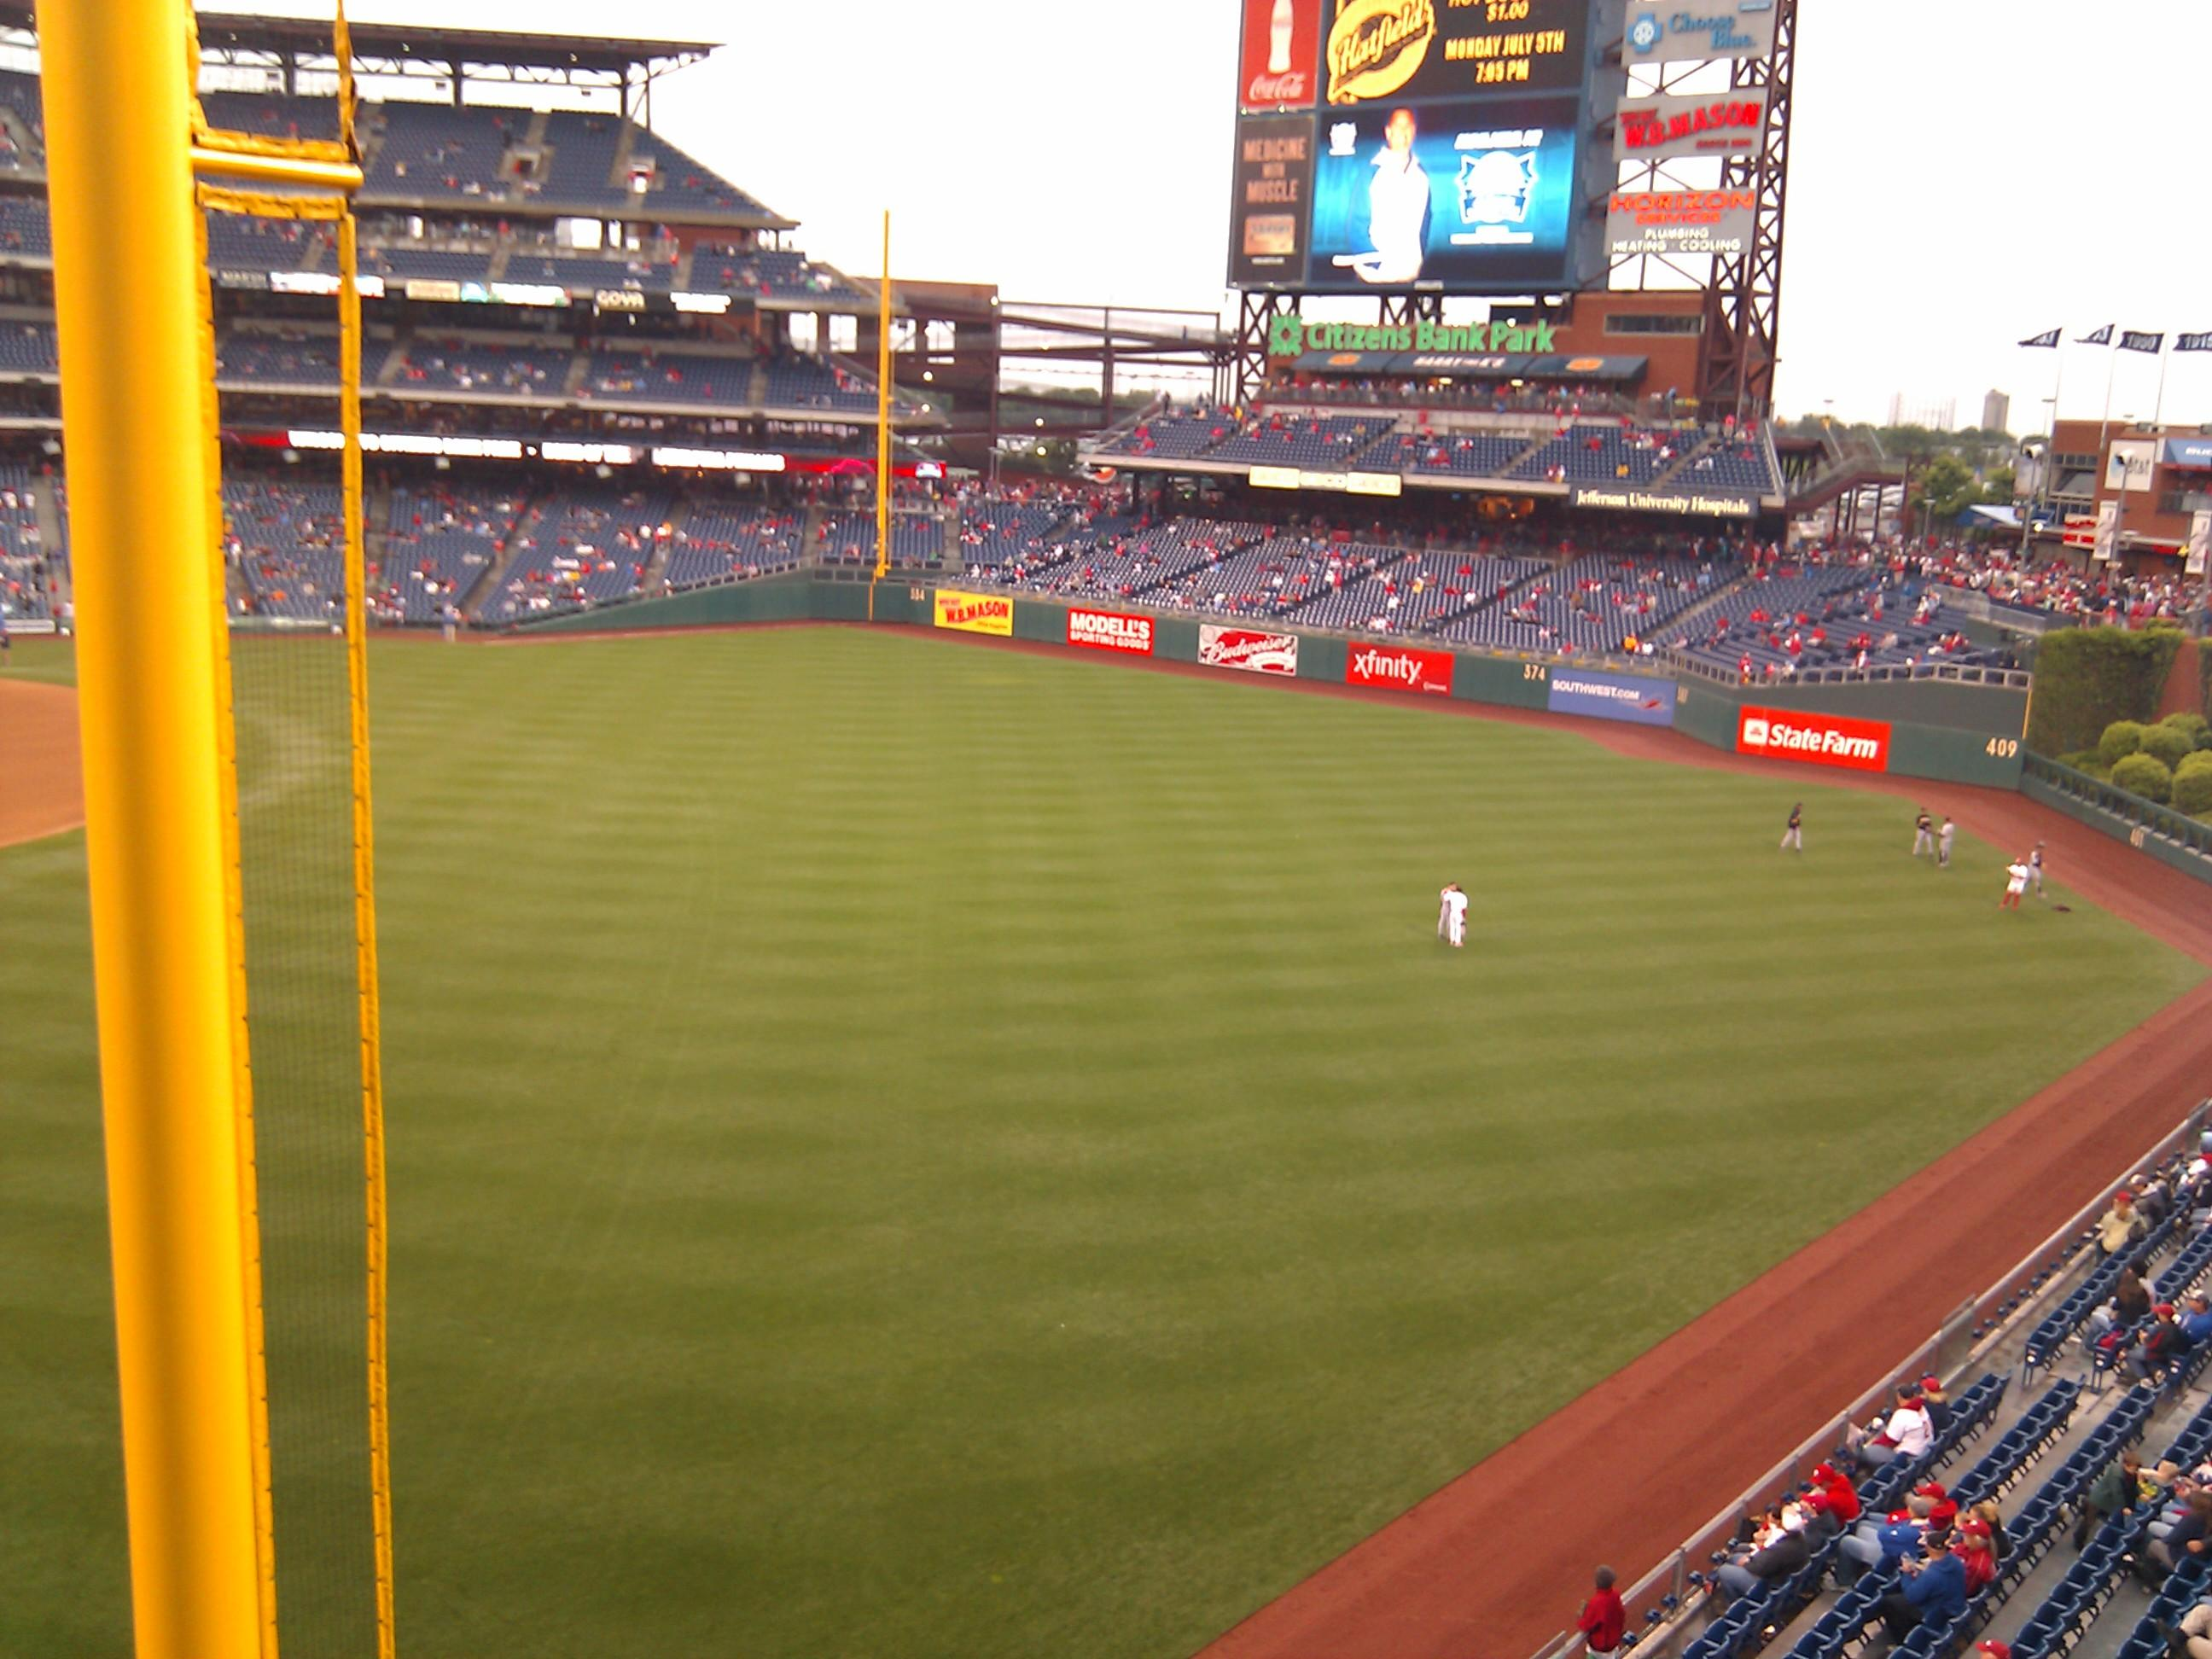 Citizens Bank Park Section 206 Row 1 Seat 5